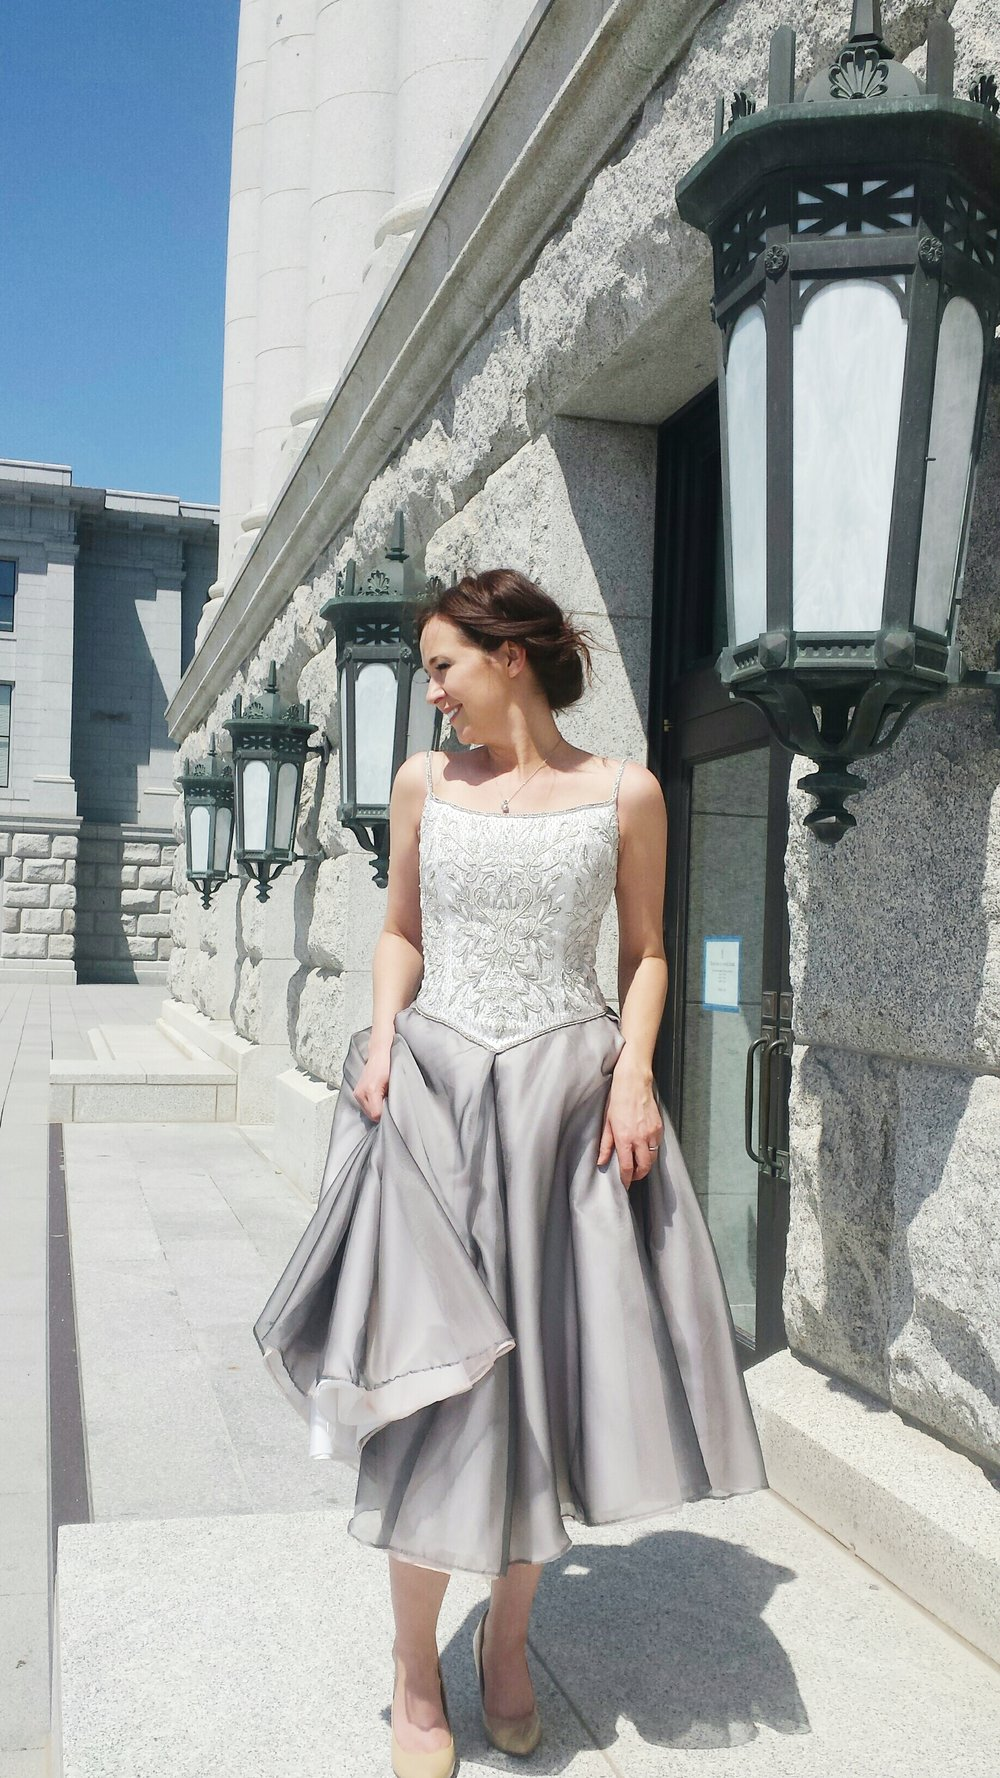 wedding_dress_conversion_she_wore_stars_fashion_tuille_silk_highheels_sequins_beads_cocktail_1.jpg